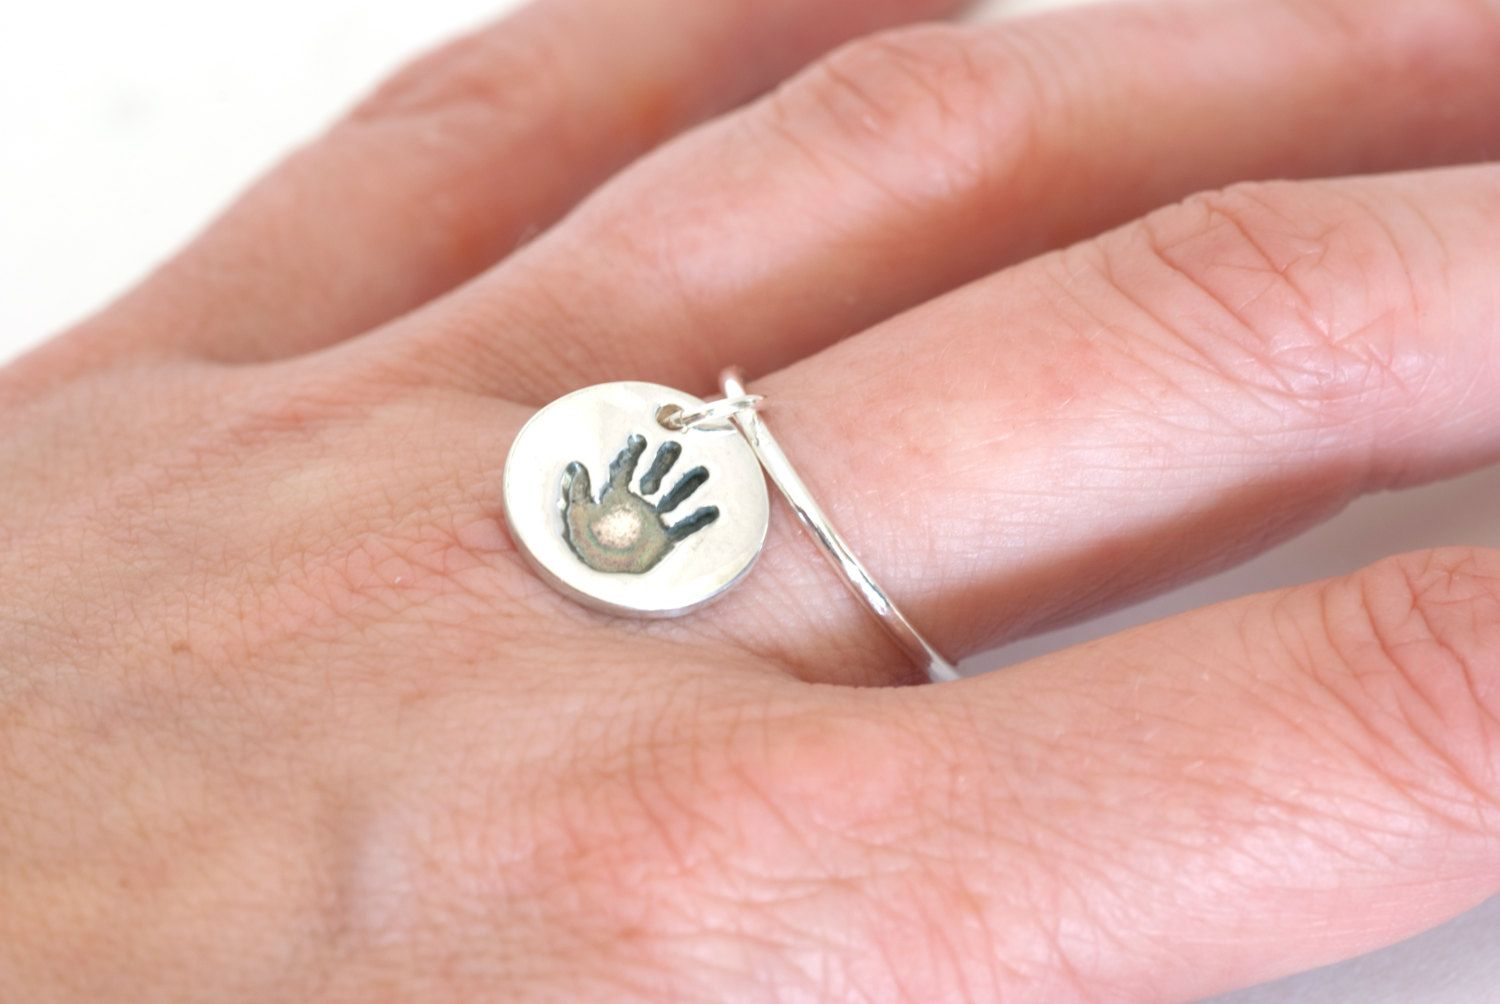 jewellery or rings on hand heart fp baby oval handprint ring footprint